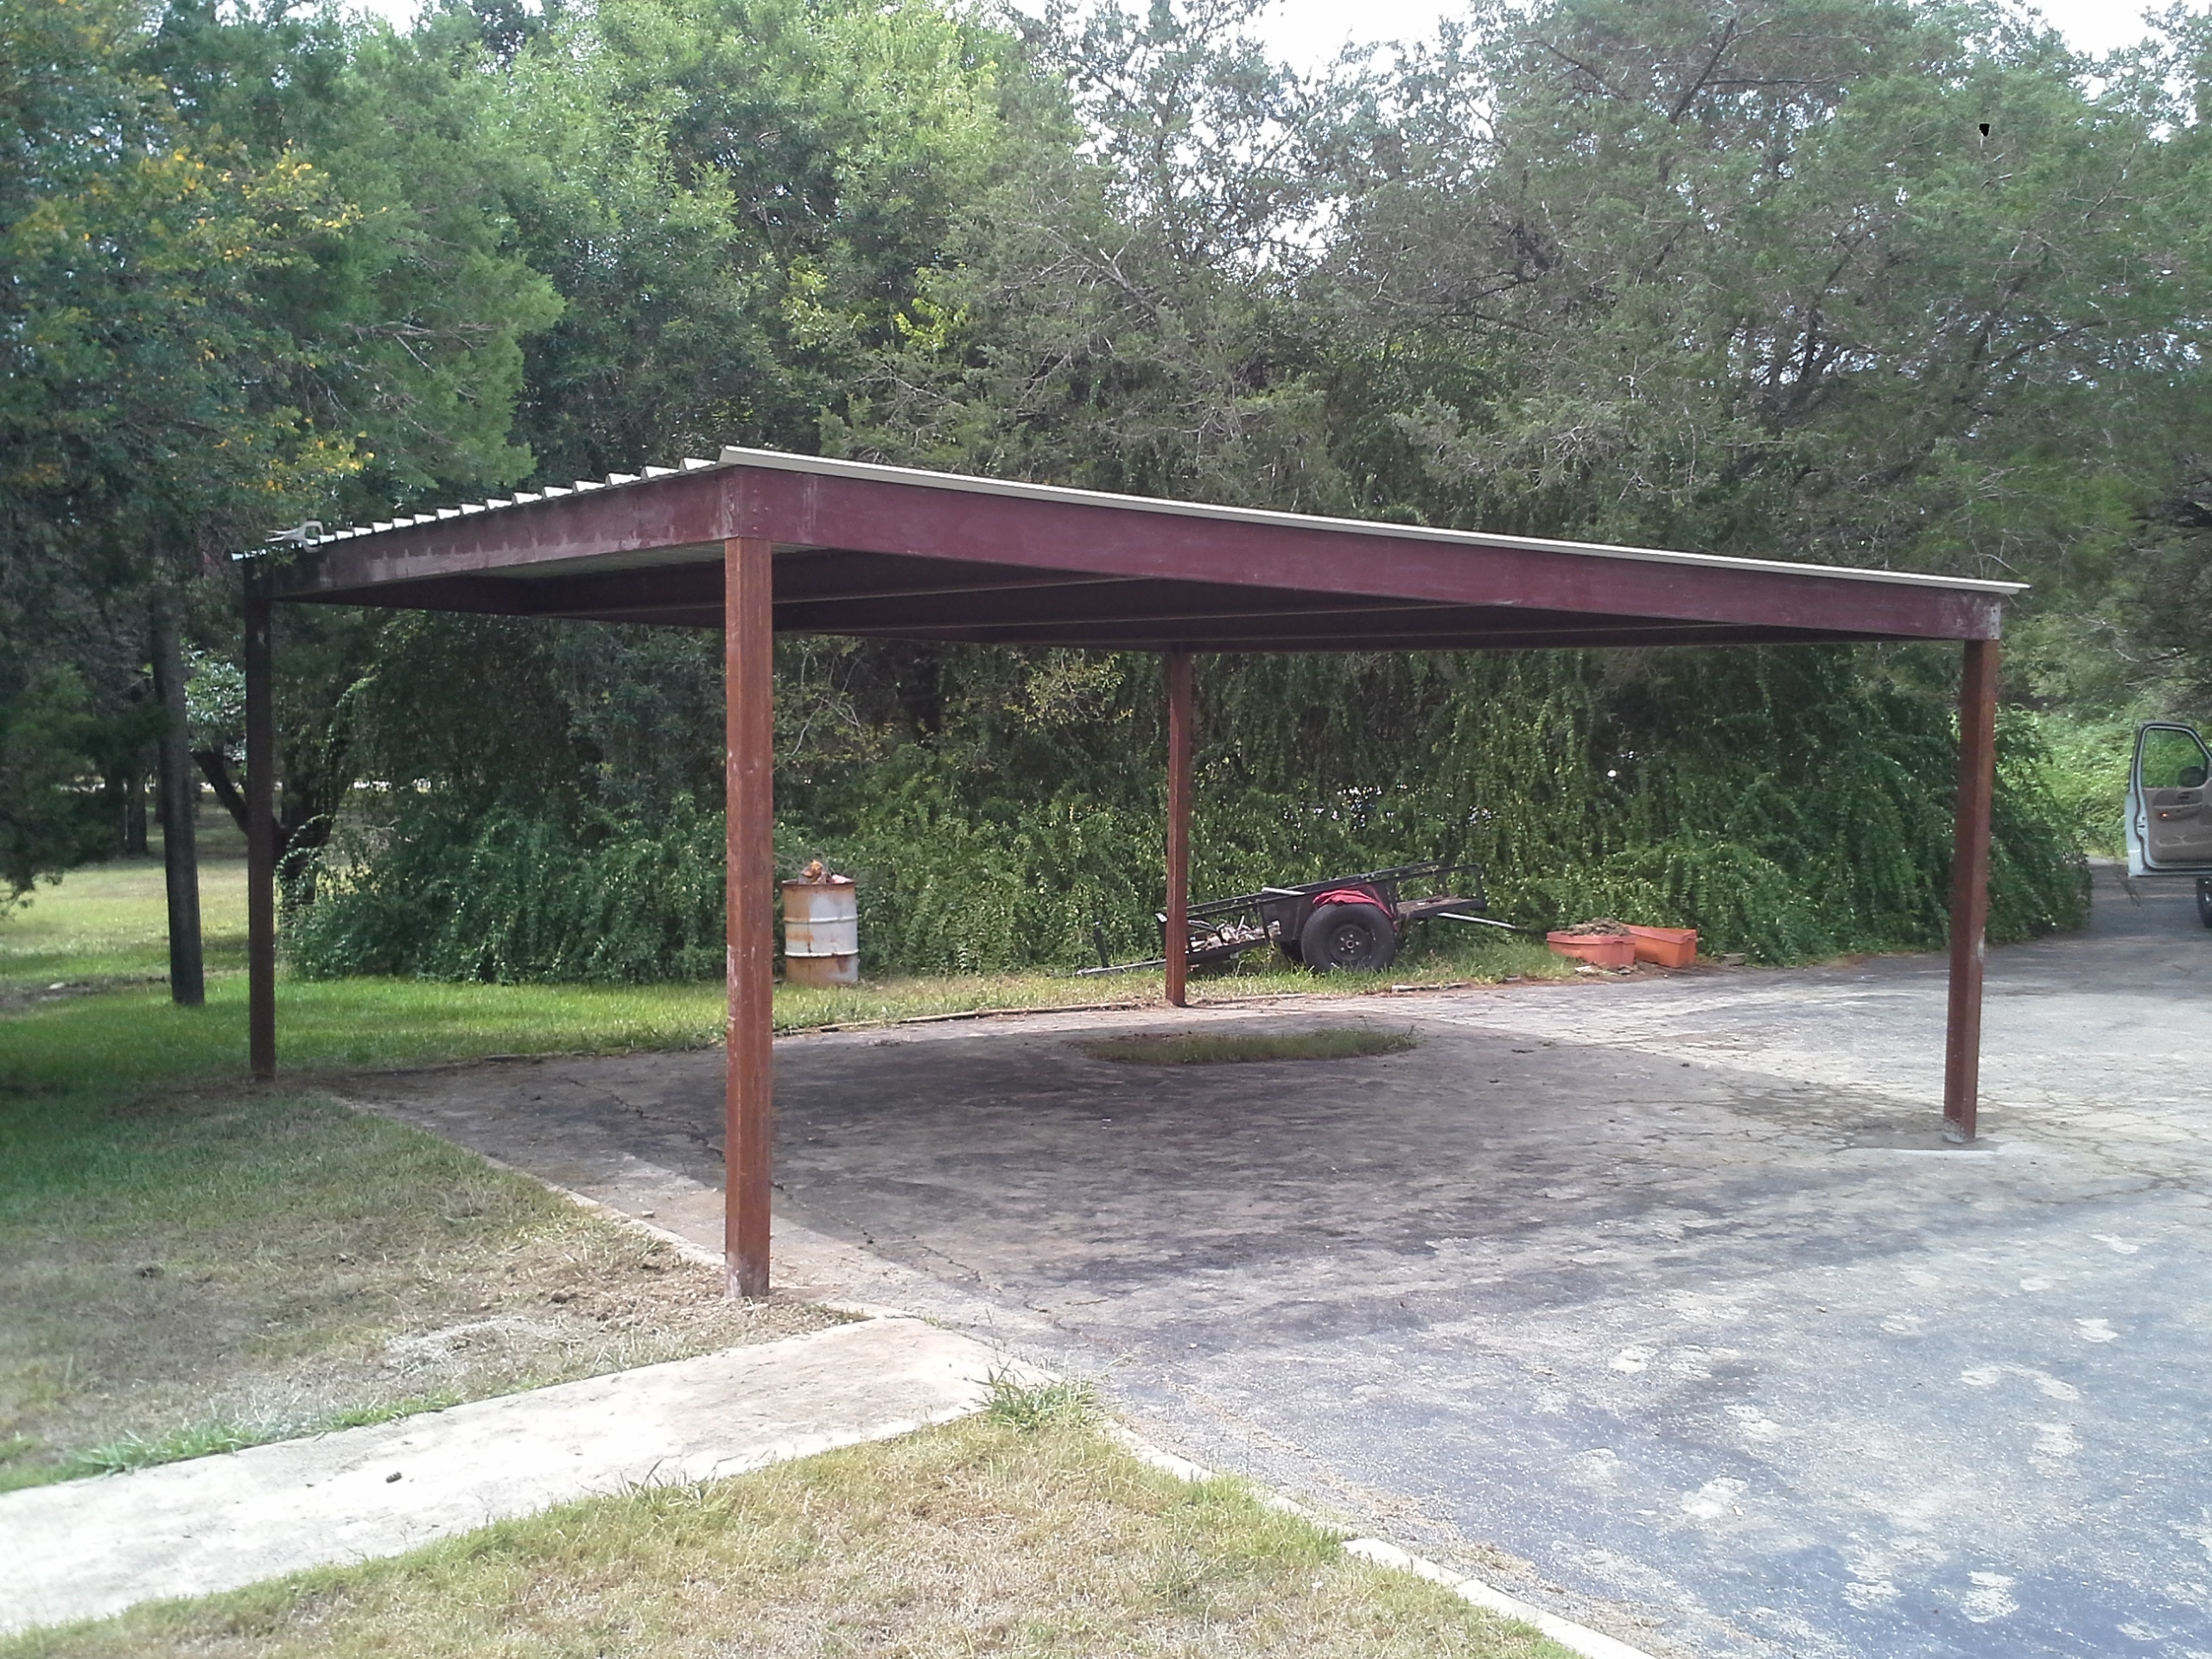 standing patio x patrofi metal free veloclub freestanding co covers awning carport